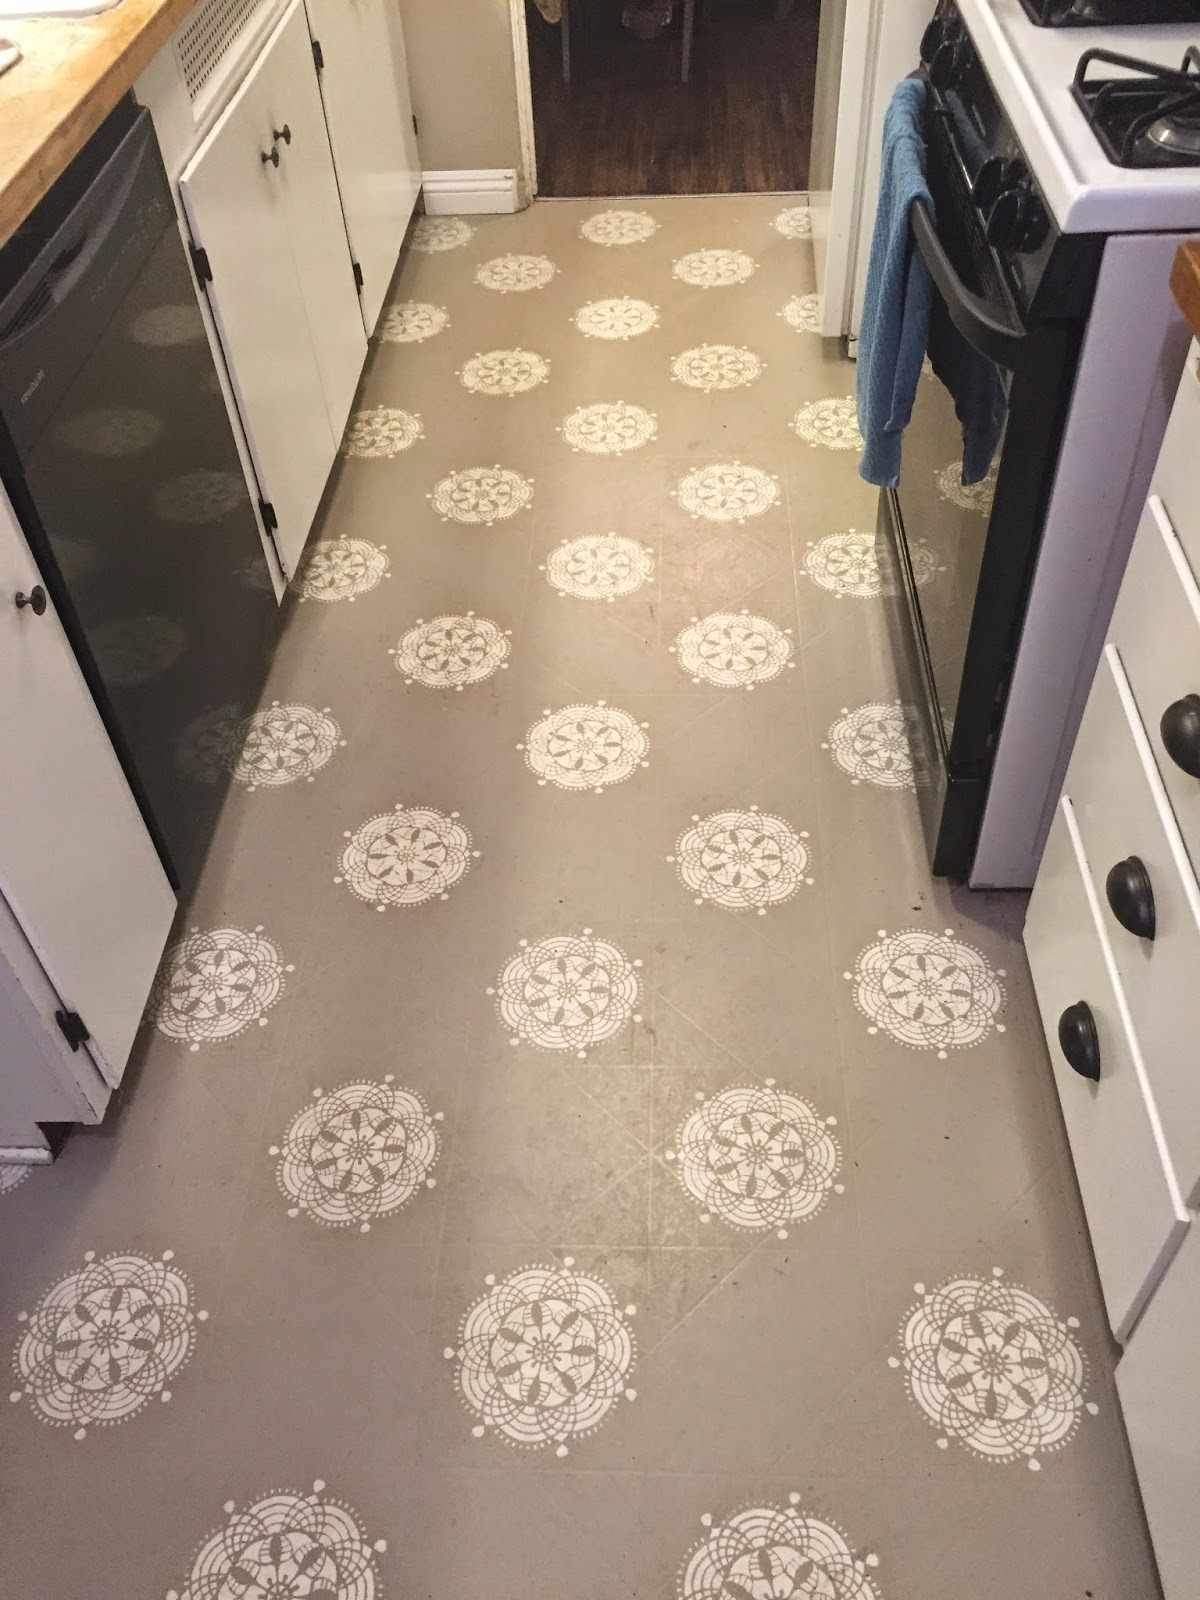 work with what you got painted kitchen kitchen floor lino Work with what you GOT Painted Kitchen Floors